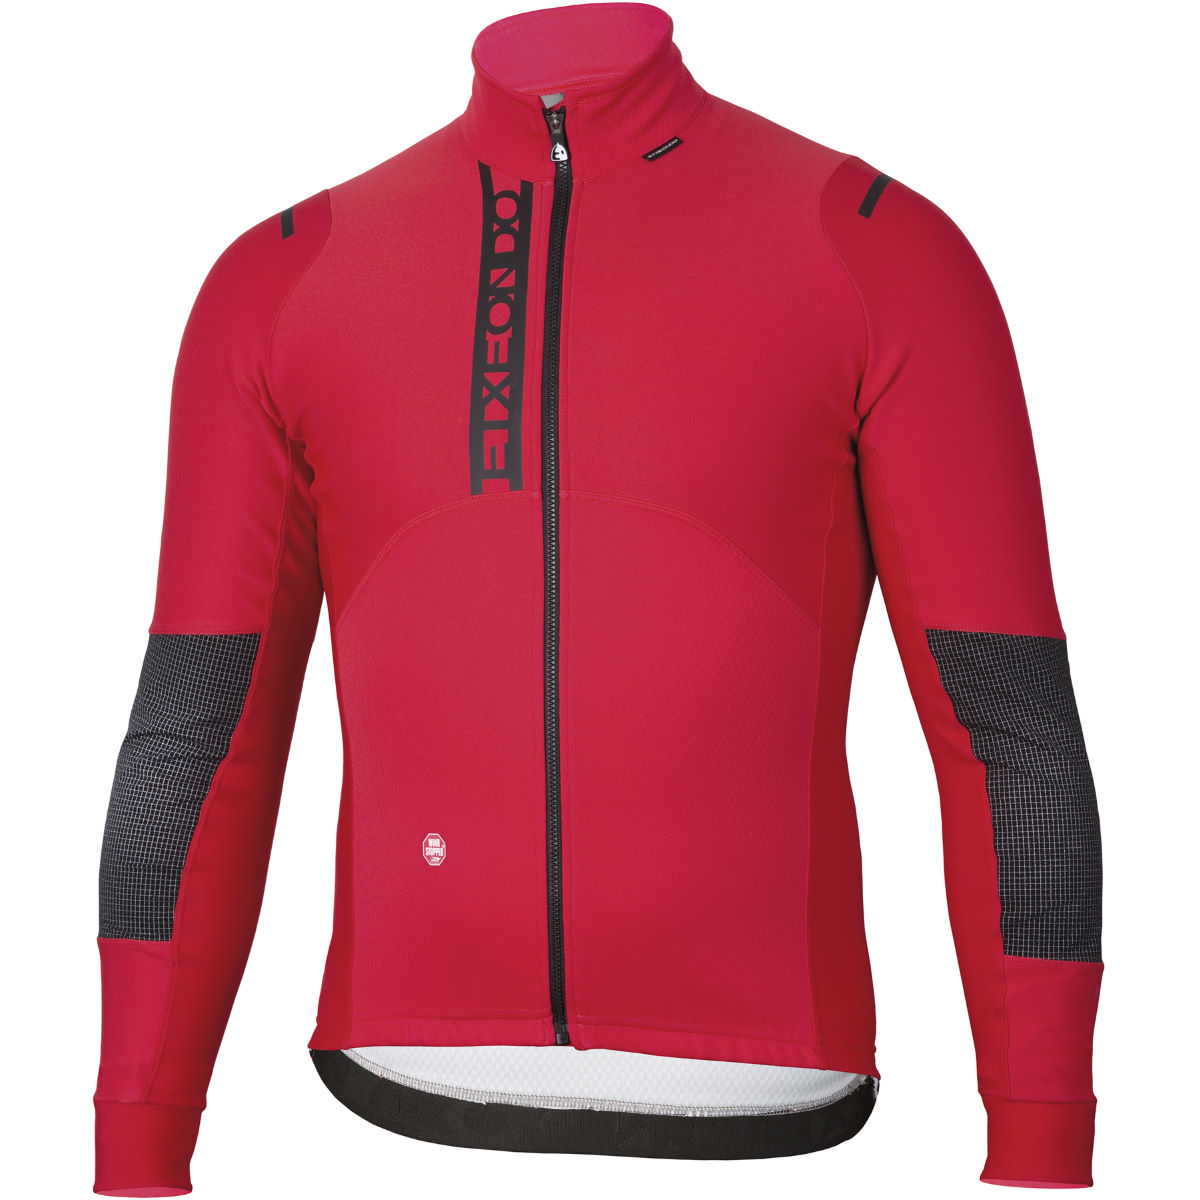 Veste Etxeondo Sekur Windstopper - 3XL Rouge/Noir Coupe-vents vélo